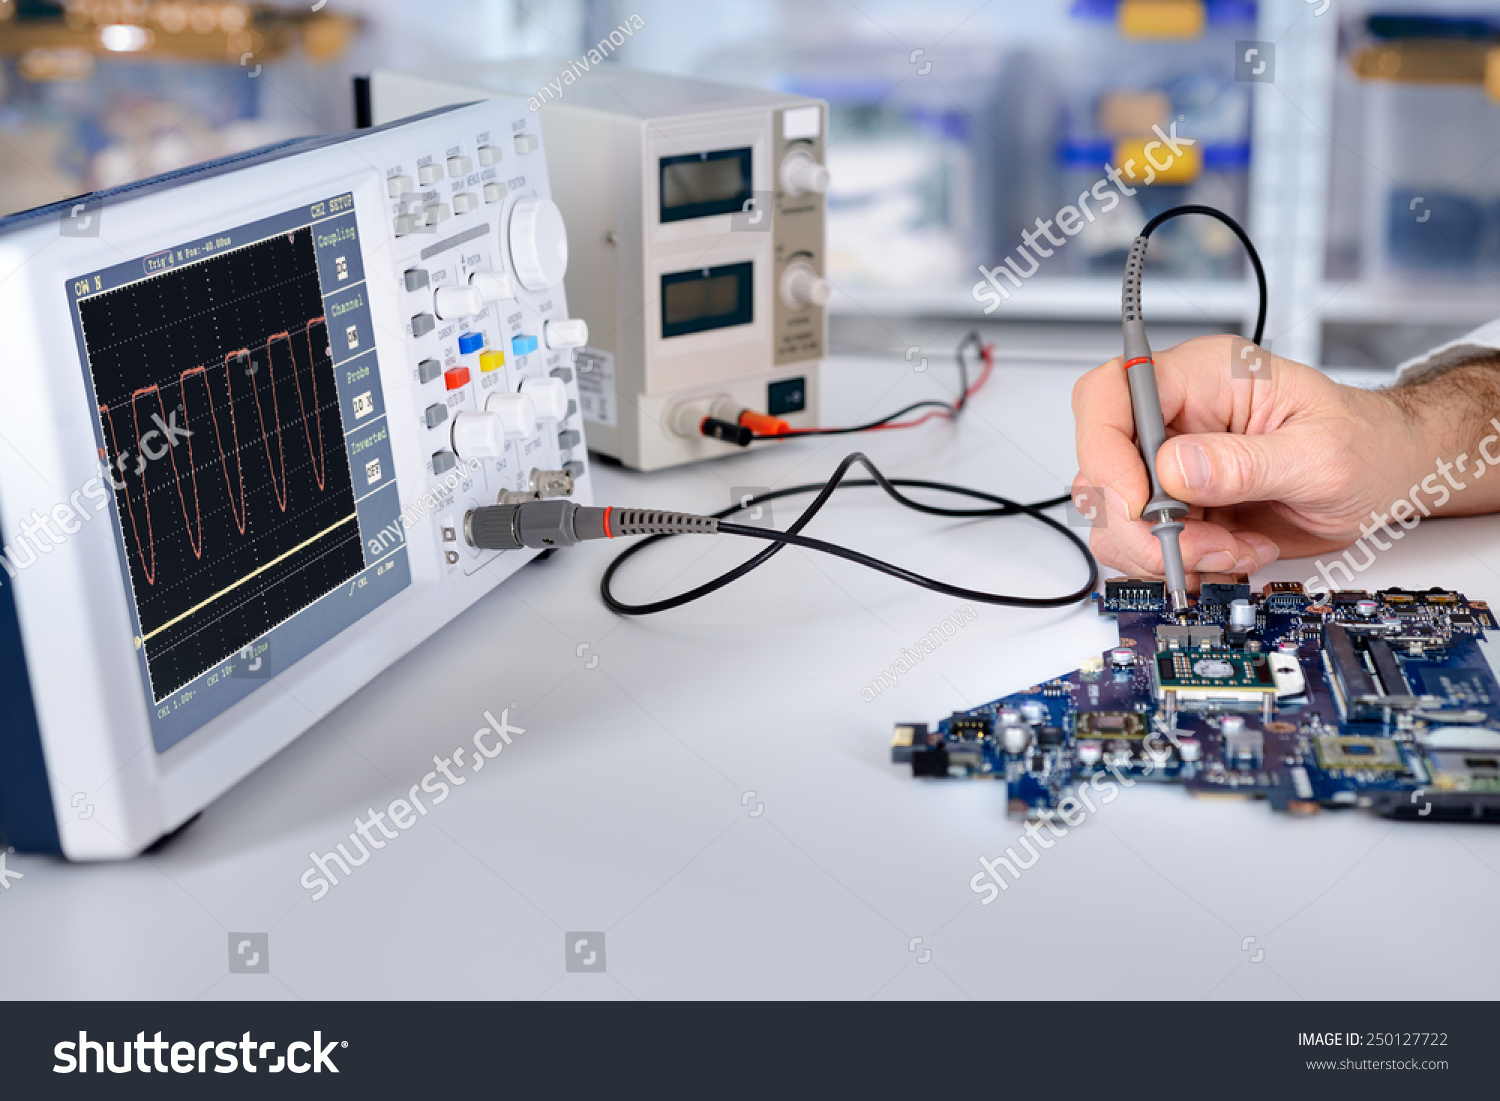 Motherboard Repair Oscilloscope Lcr Meter Electro Science Industries For Sale Electroniccircuits